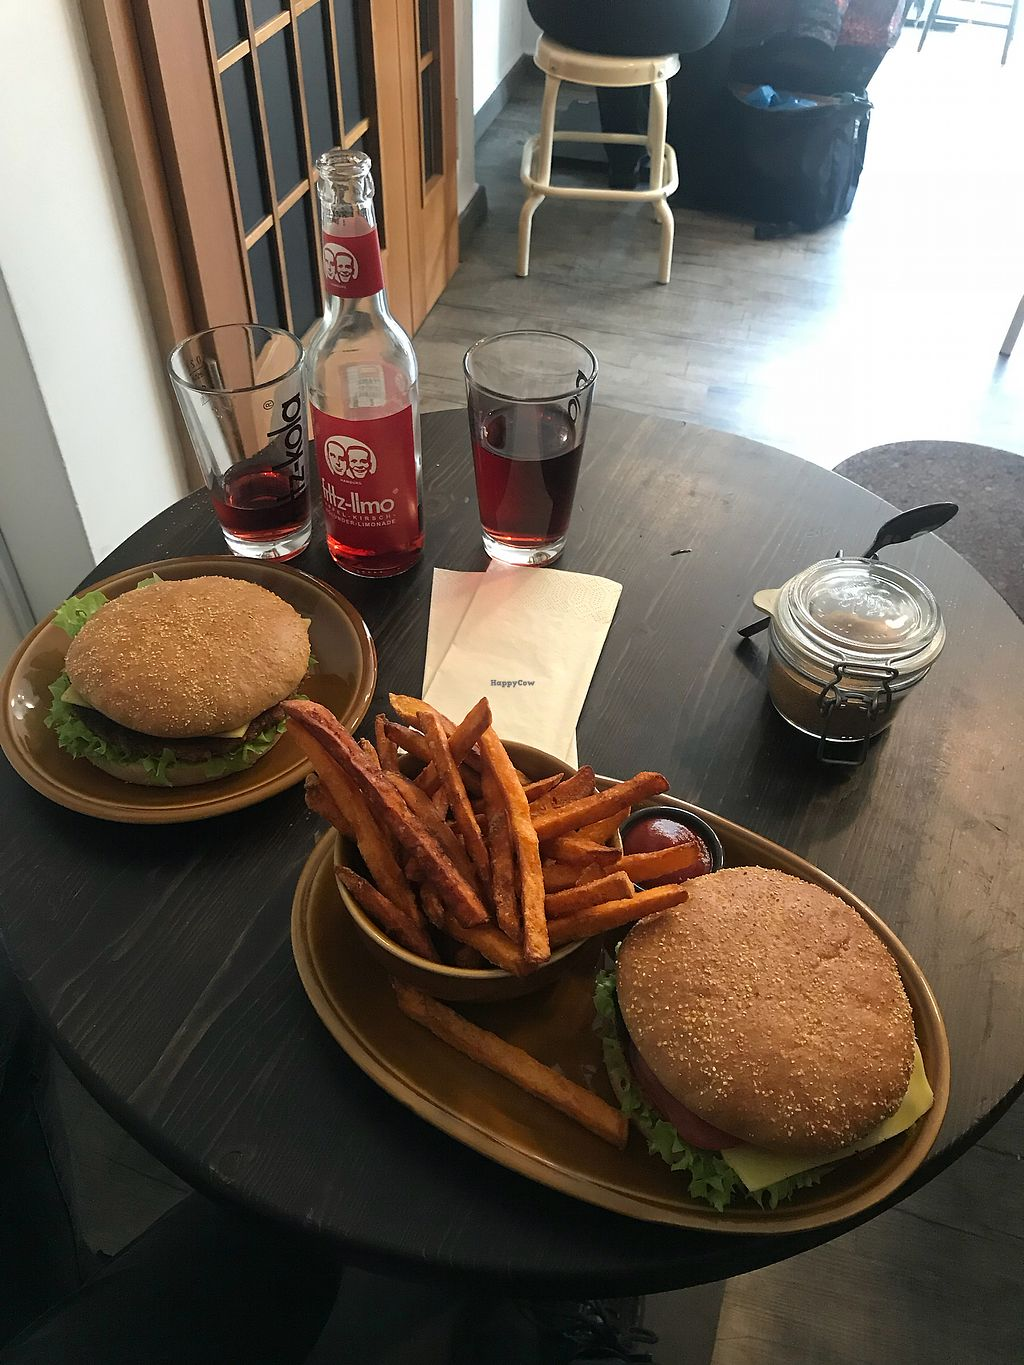 "Photo of Roots  by <a href=""/members/profile/SzapuDominika"">SzapuDominika</a> <br/>Vegan cheeseburgers and sweet potato fries  <br/> February 9, 2018  - <a href='/contact/abuse/image/57177/356766'>Report</a>"